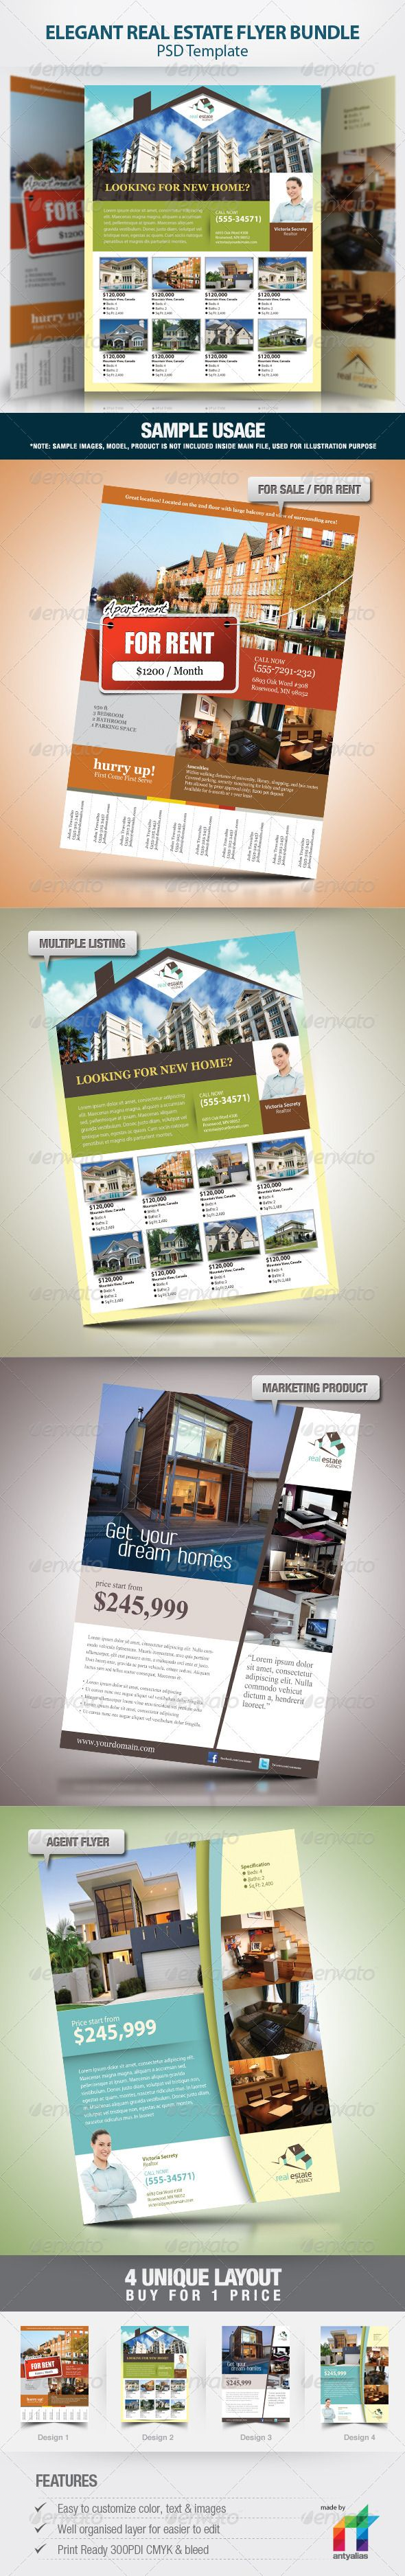 51 best flyer designs images on pinterest posters editorial